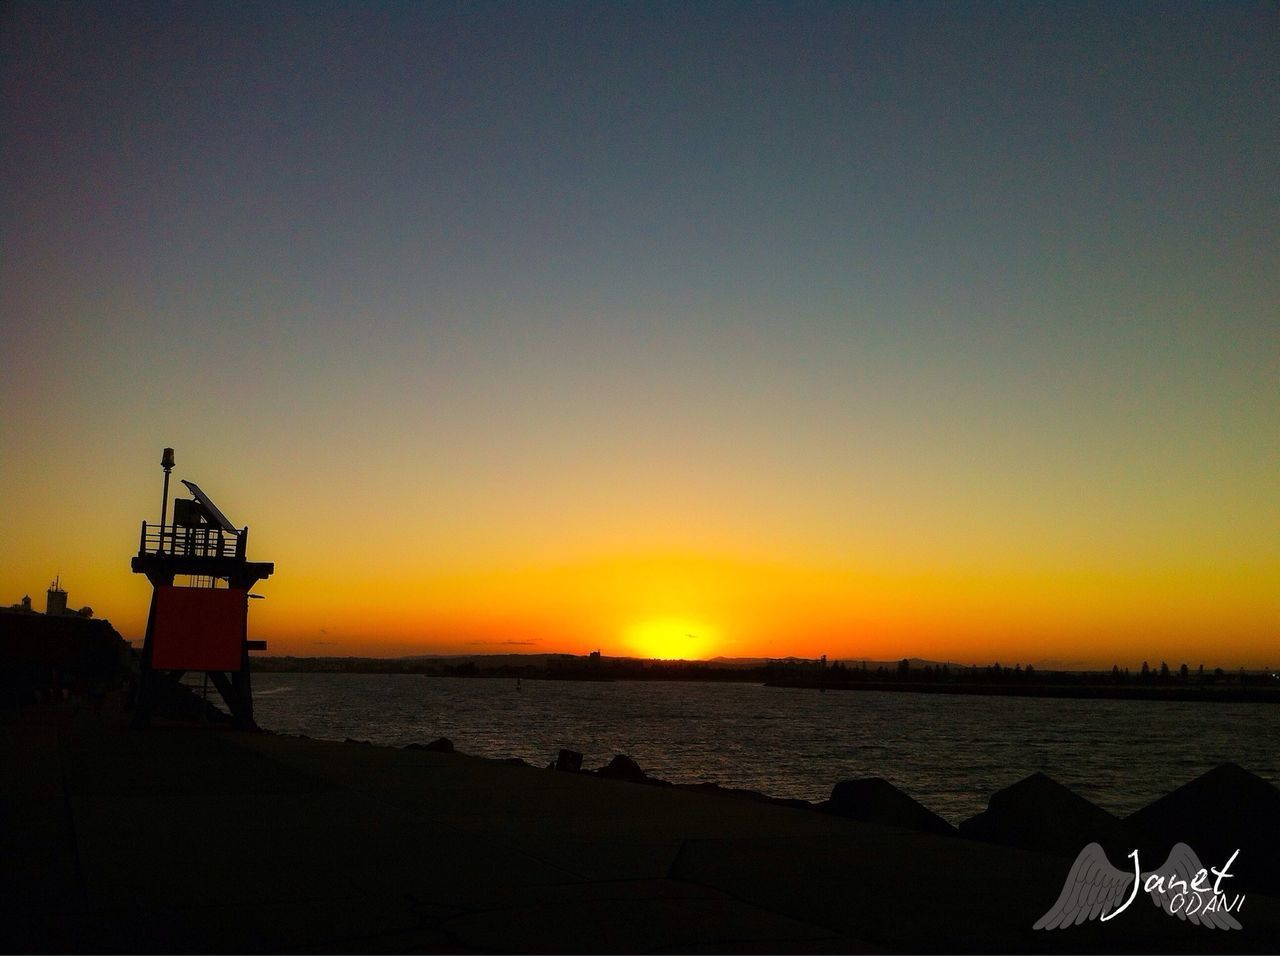 sunset, sea, silhouette, beach, sky, water, scenics, nature, tranquility, outdoors, beauty in nature, horizon over water, no people, built structure, clear sky, architecture, nautical vessel, day